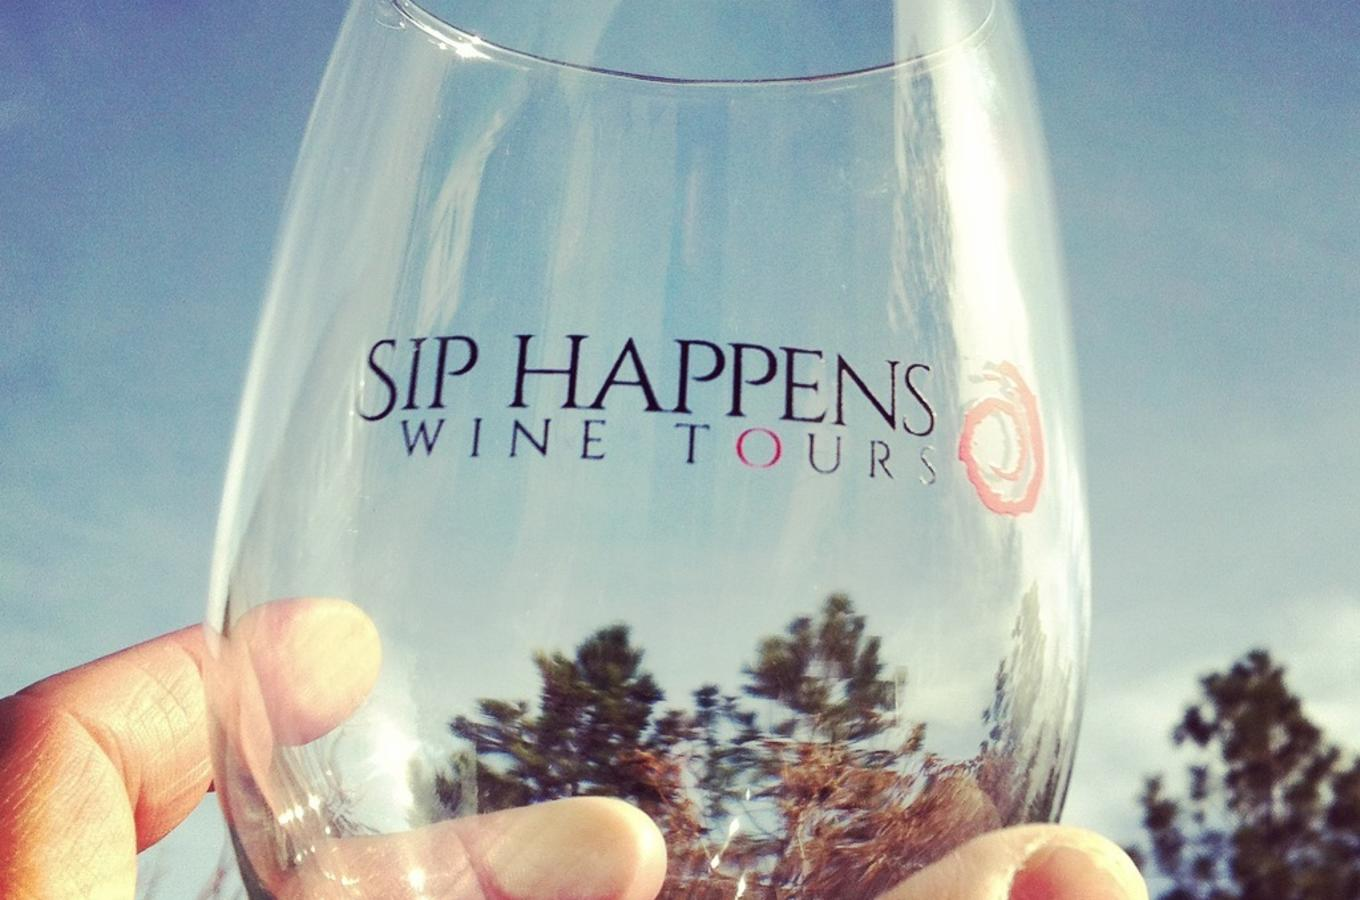 Your FREE souvenir Sip Happens Wine Tours stemless wine glass